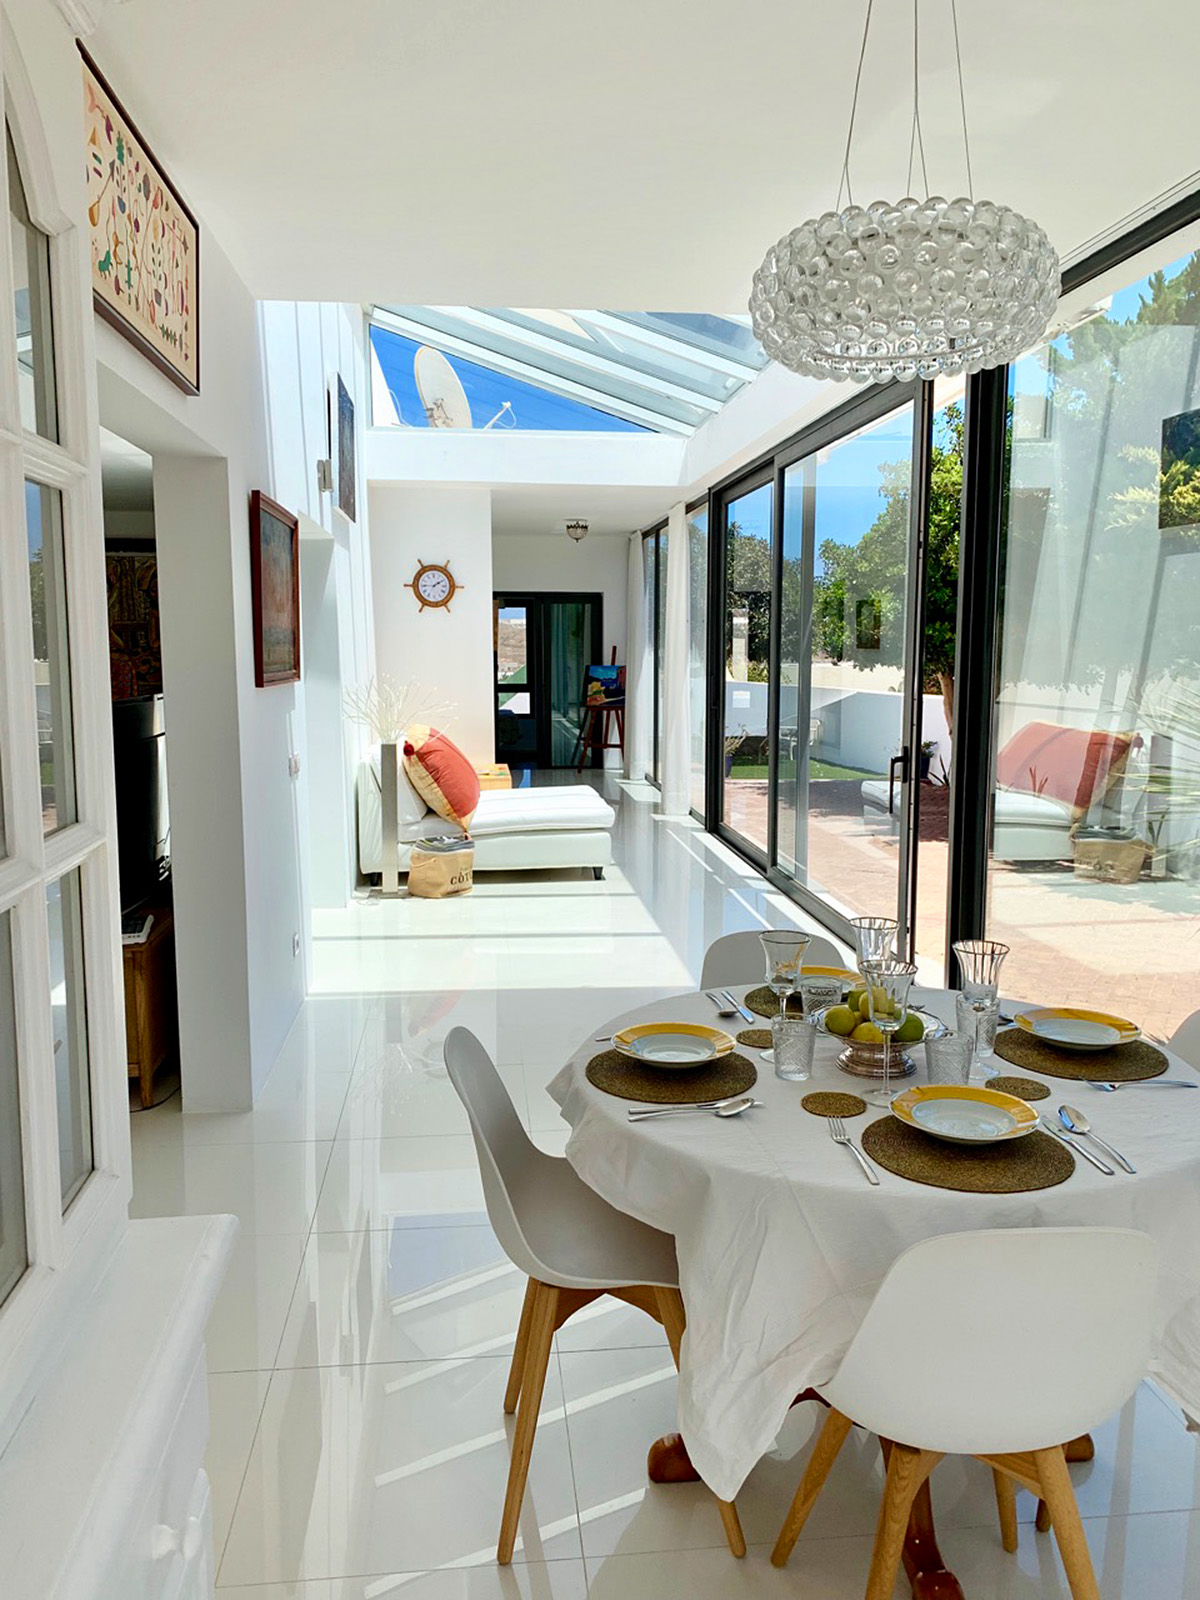 Villa with indoor swimming pool in Costa Teguise